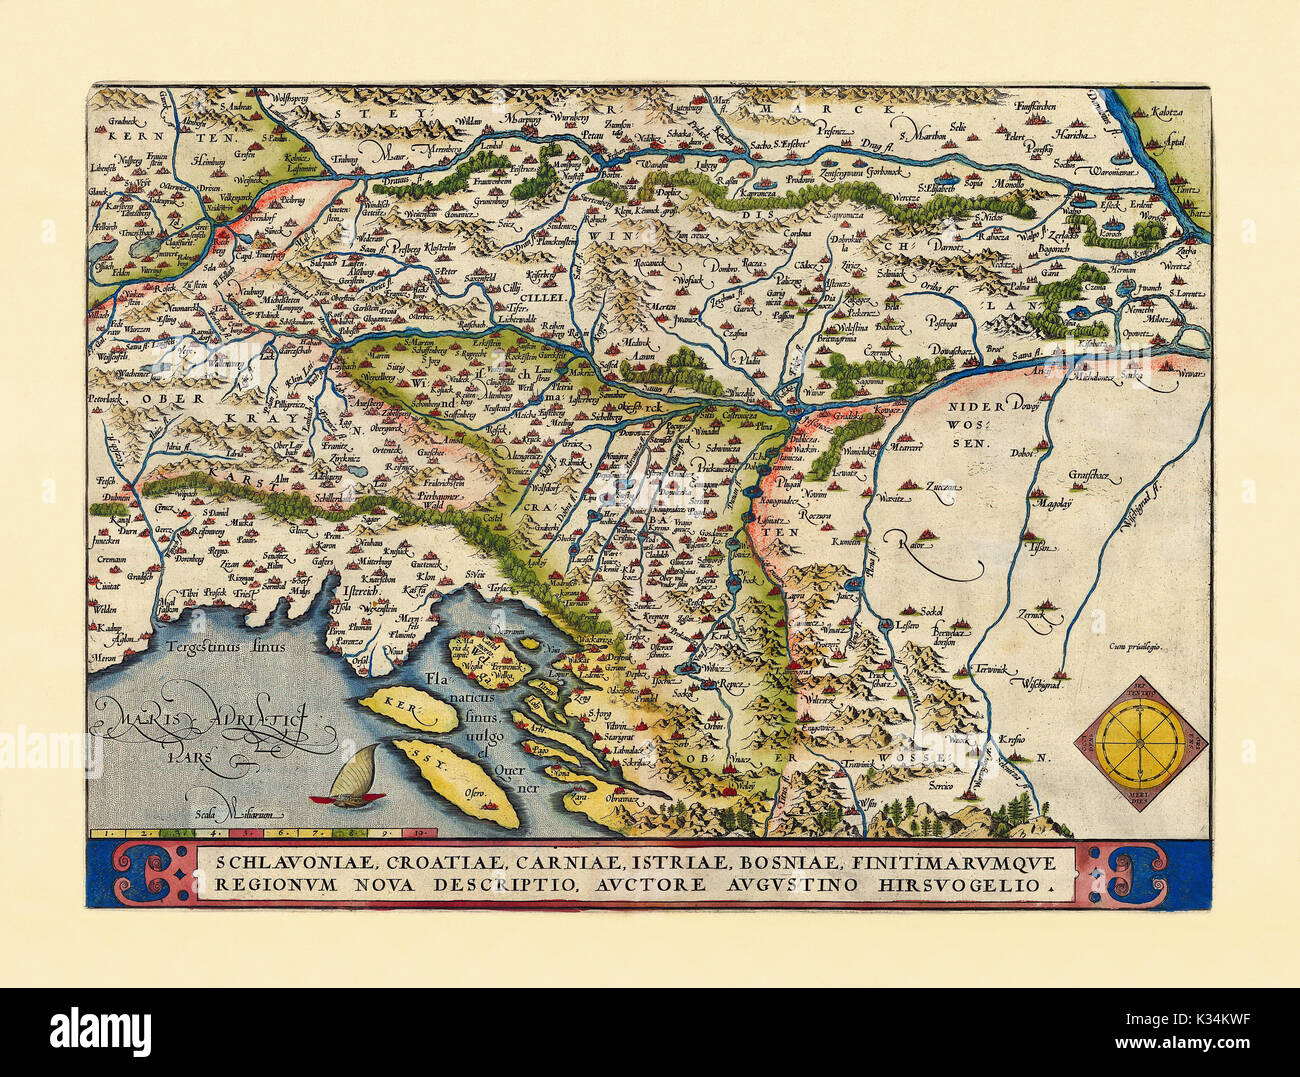 Old map of Slovenia. Excellent state of preservation realized in ancient style. All the graphic composition is inside a frame. By Ortelius, Theatrum Orbis Terrarum, Antwerp, 1570 - Stock Image